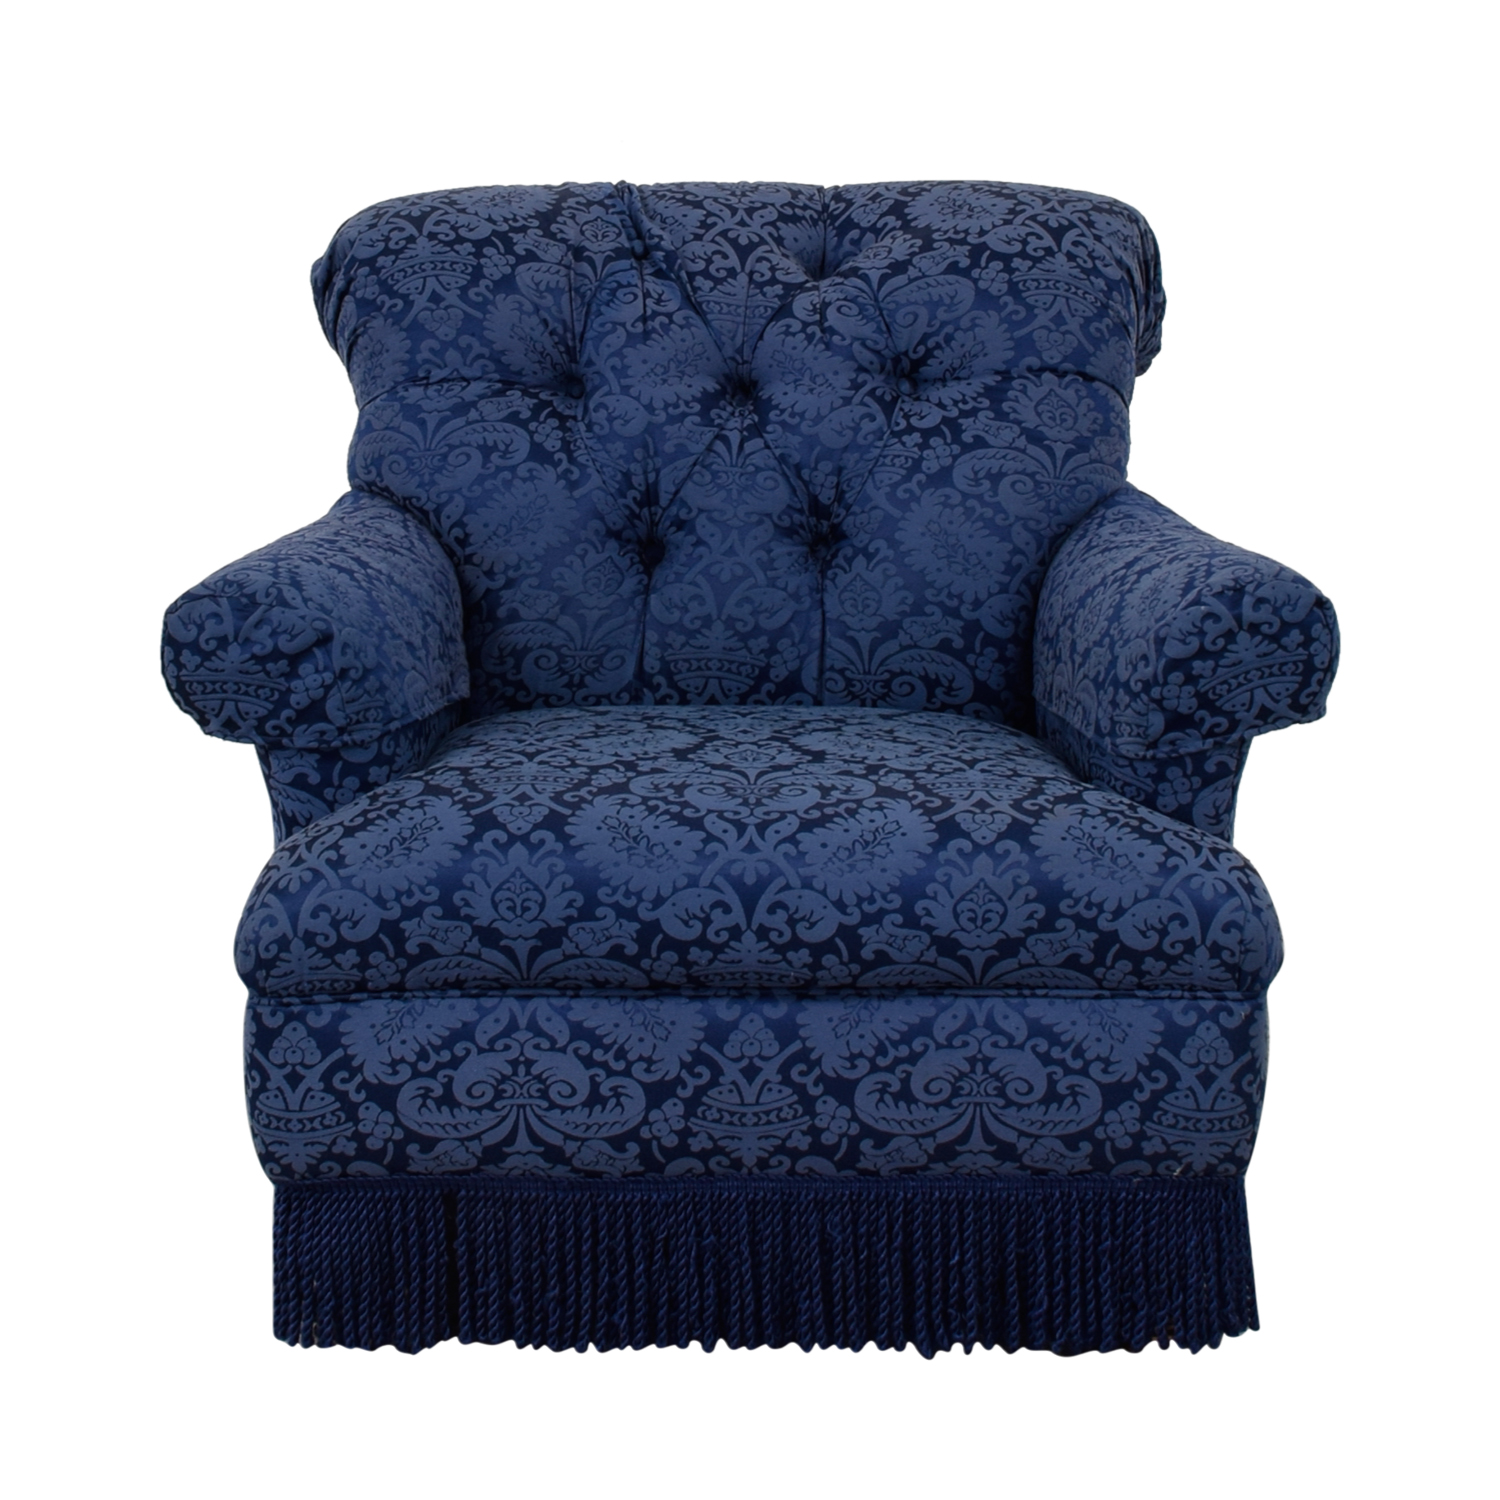 Ralph Lauren Ralph Lauren Blue Tufted Club Chair second hand